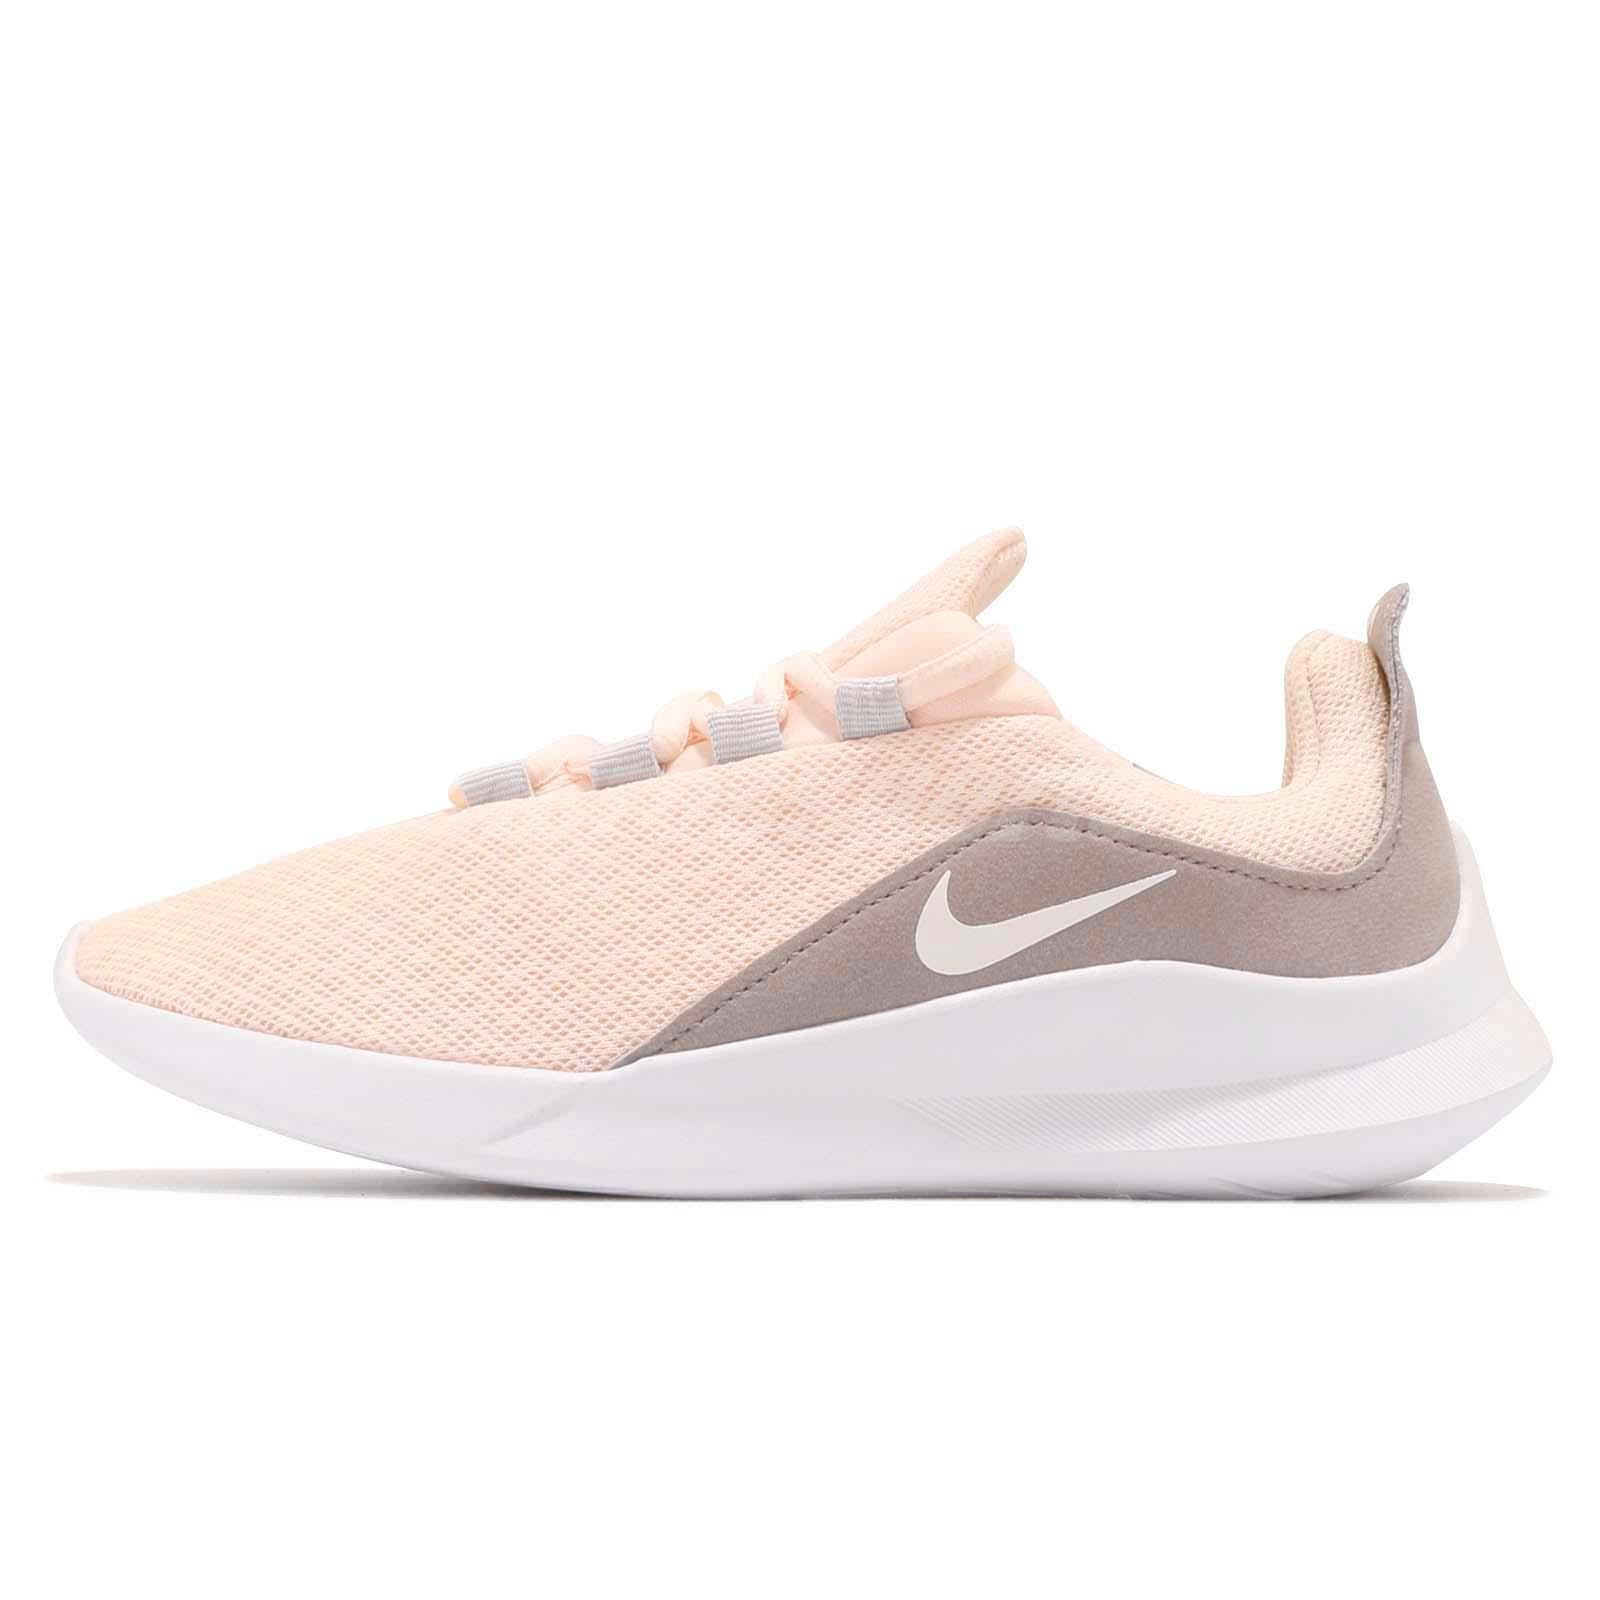 separation shoes 6e128 bfa09 Nike Wmns Viale NSW Guava Ice White Grey Women Casual Shoes Sneakers AA2185- 800